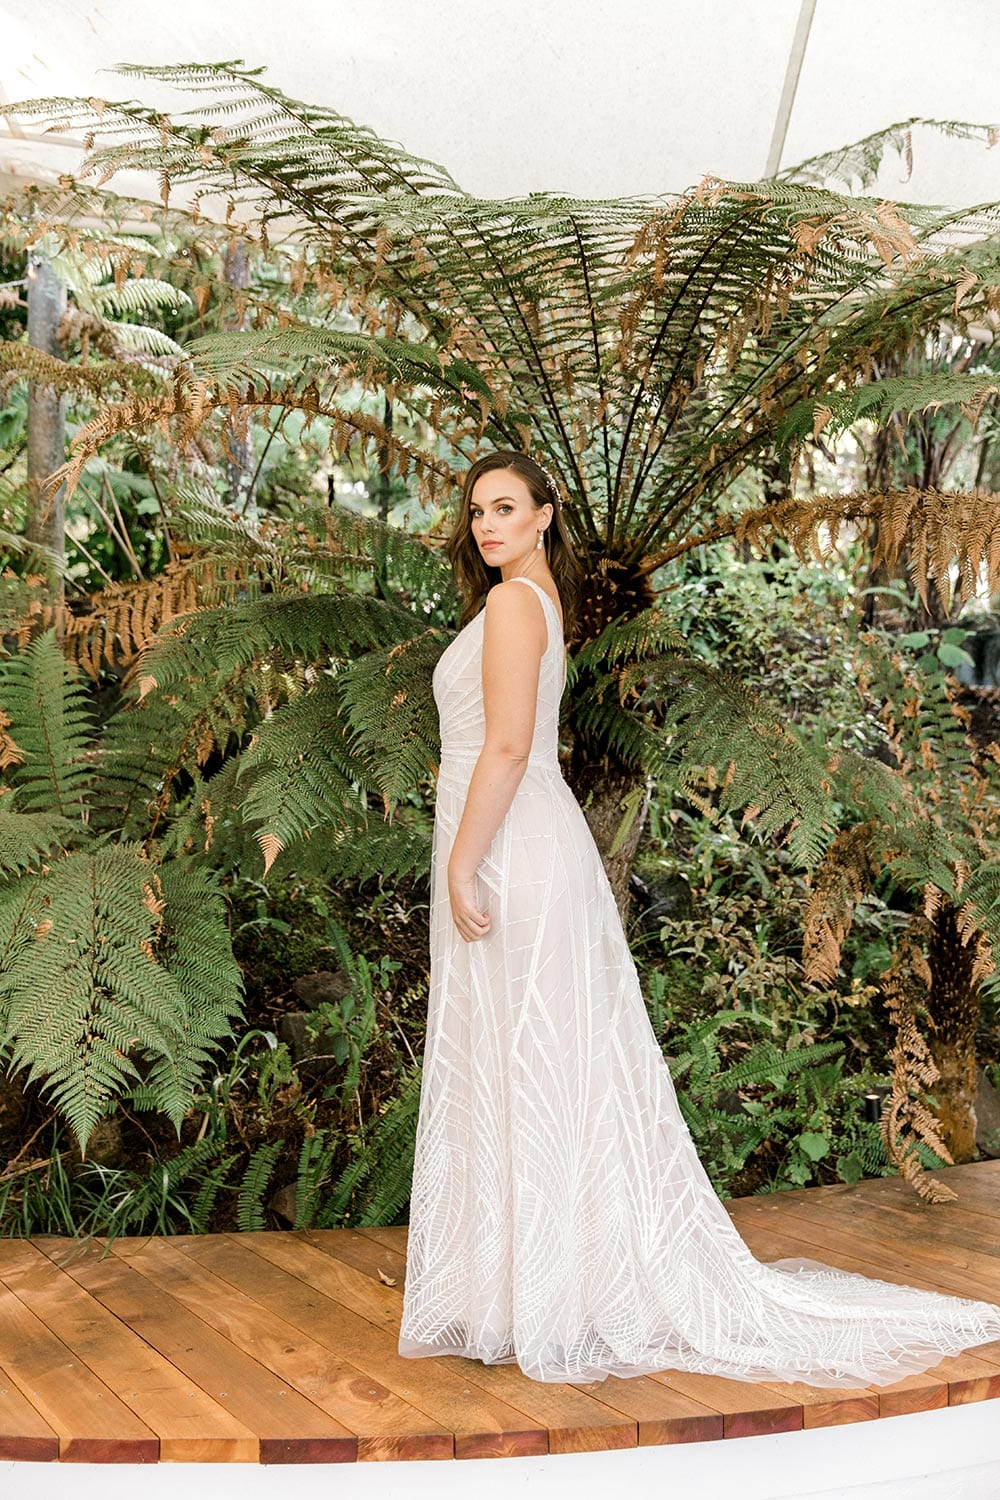 Amber Wedding Dress from Vinka Design. Beautiful wedding dress with V-neckline bodice & V-shaped back on a soft blush/light nude base. Rich beading sculpts the waist & relaxed-fit skirt falls to a train. Full length of dress with train flowing to the ground. Photographed at Tui Hills by Emmaline Photography.